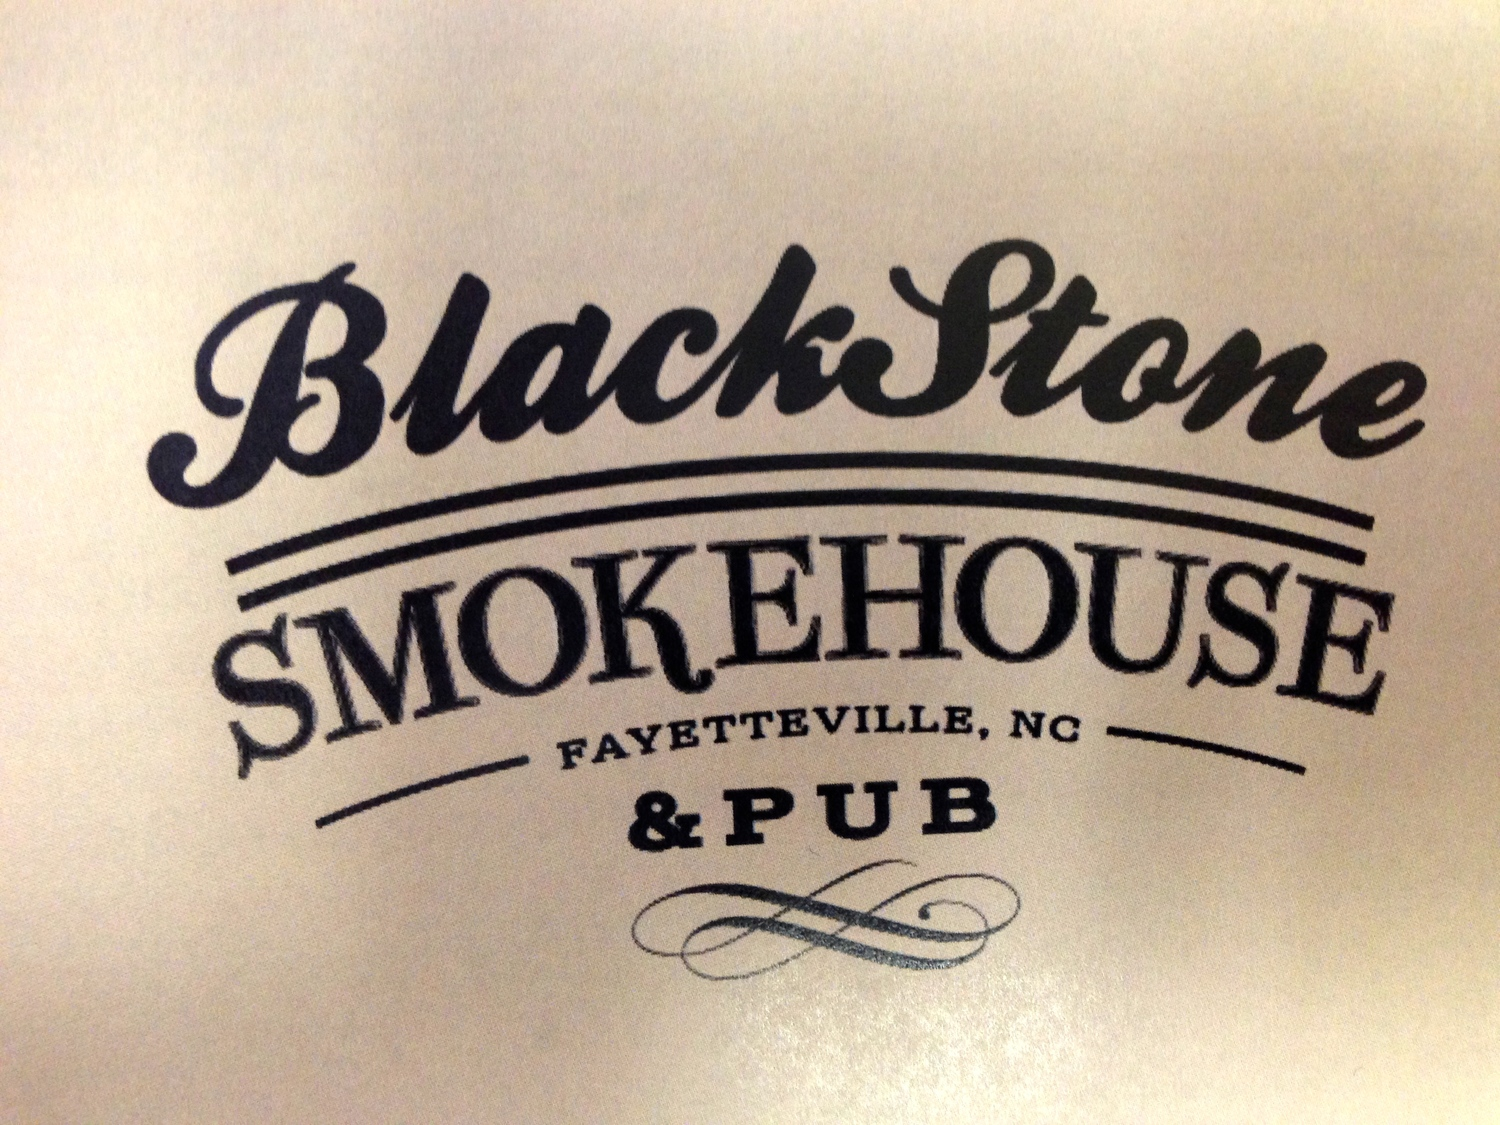 Blackstone Smokehouse & Pub